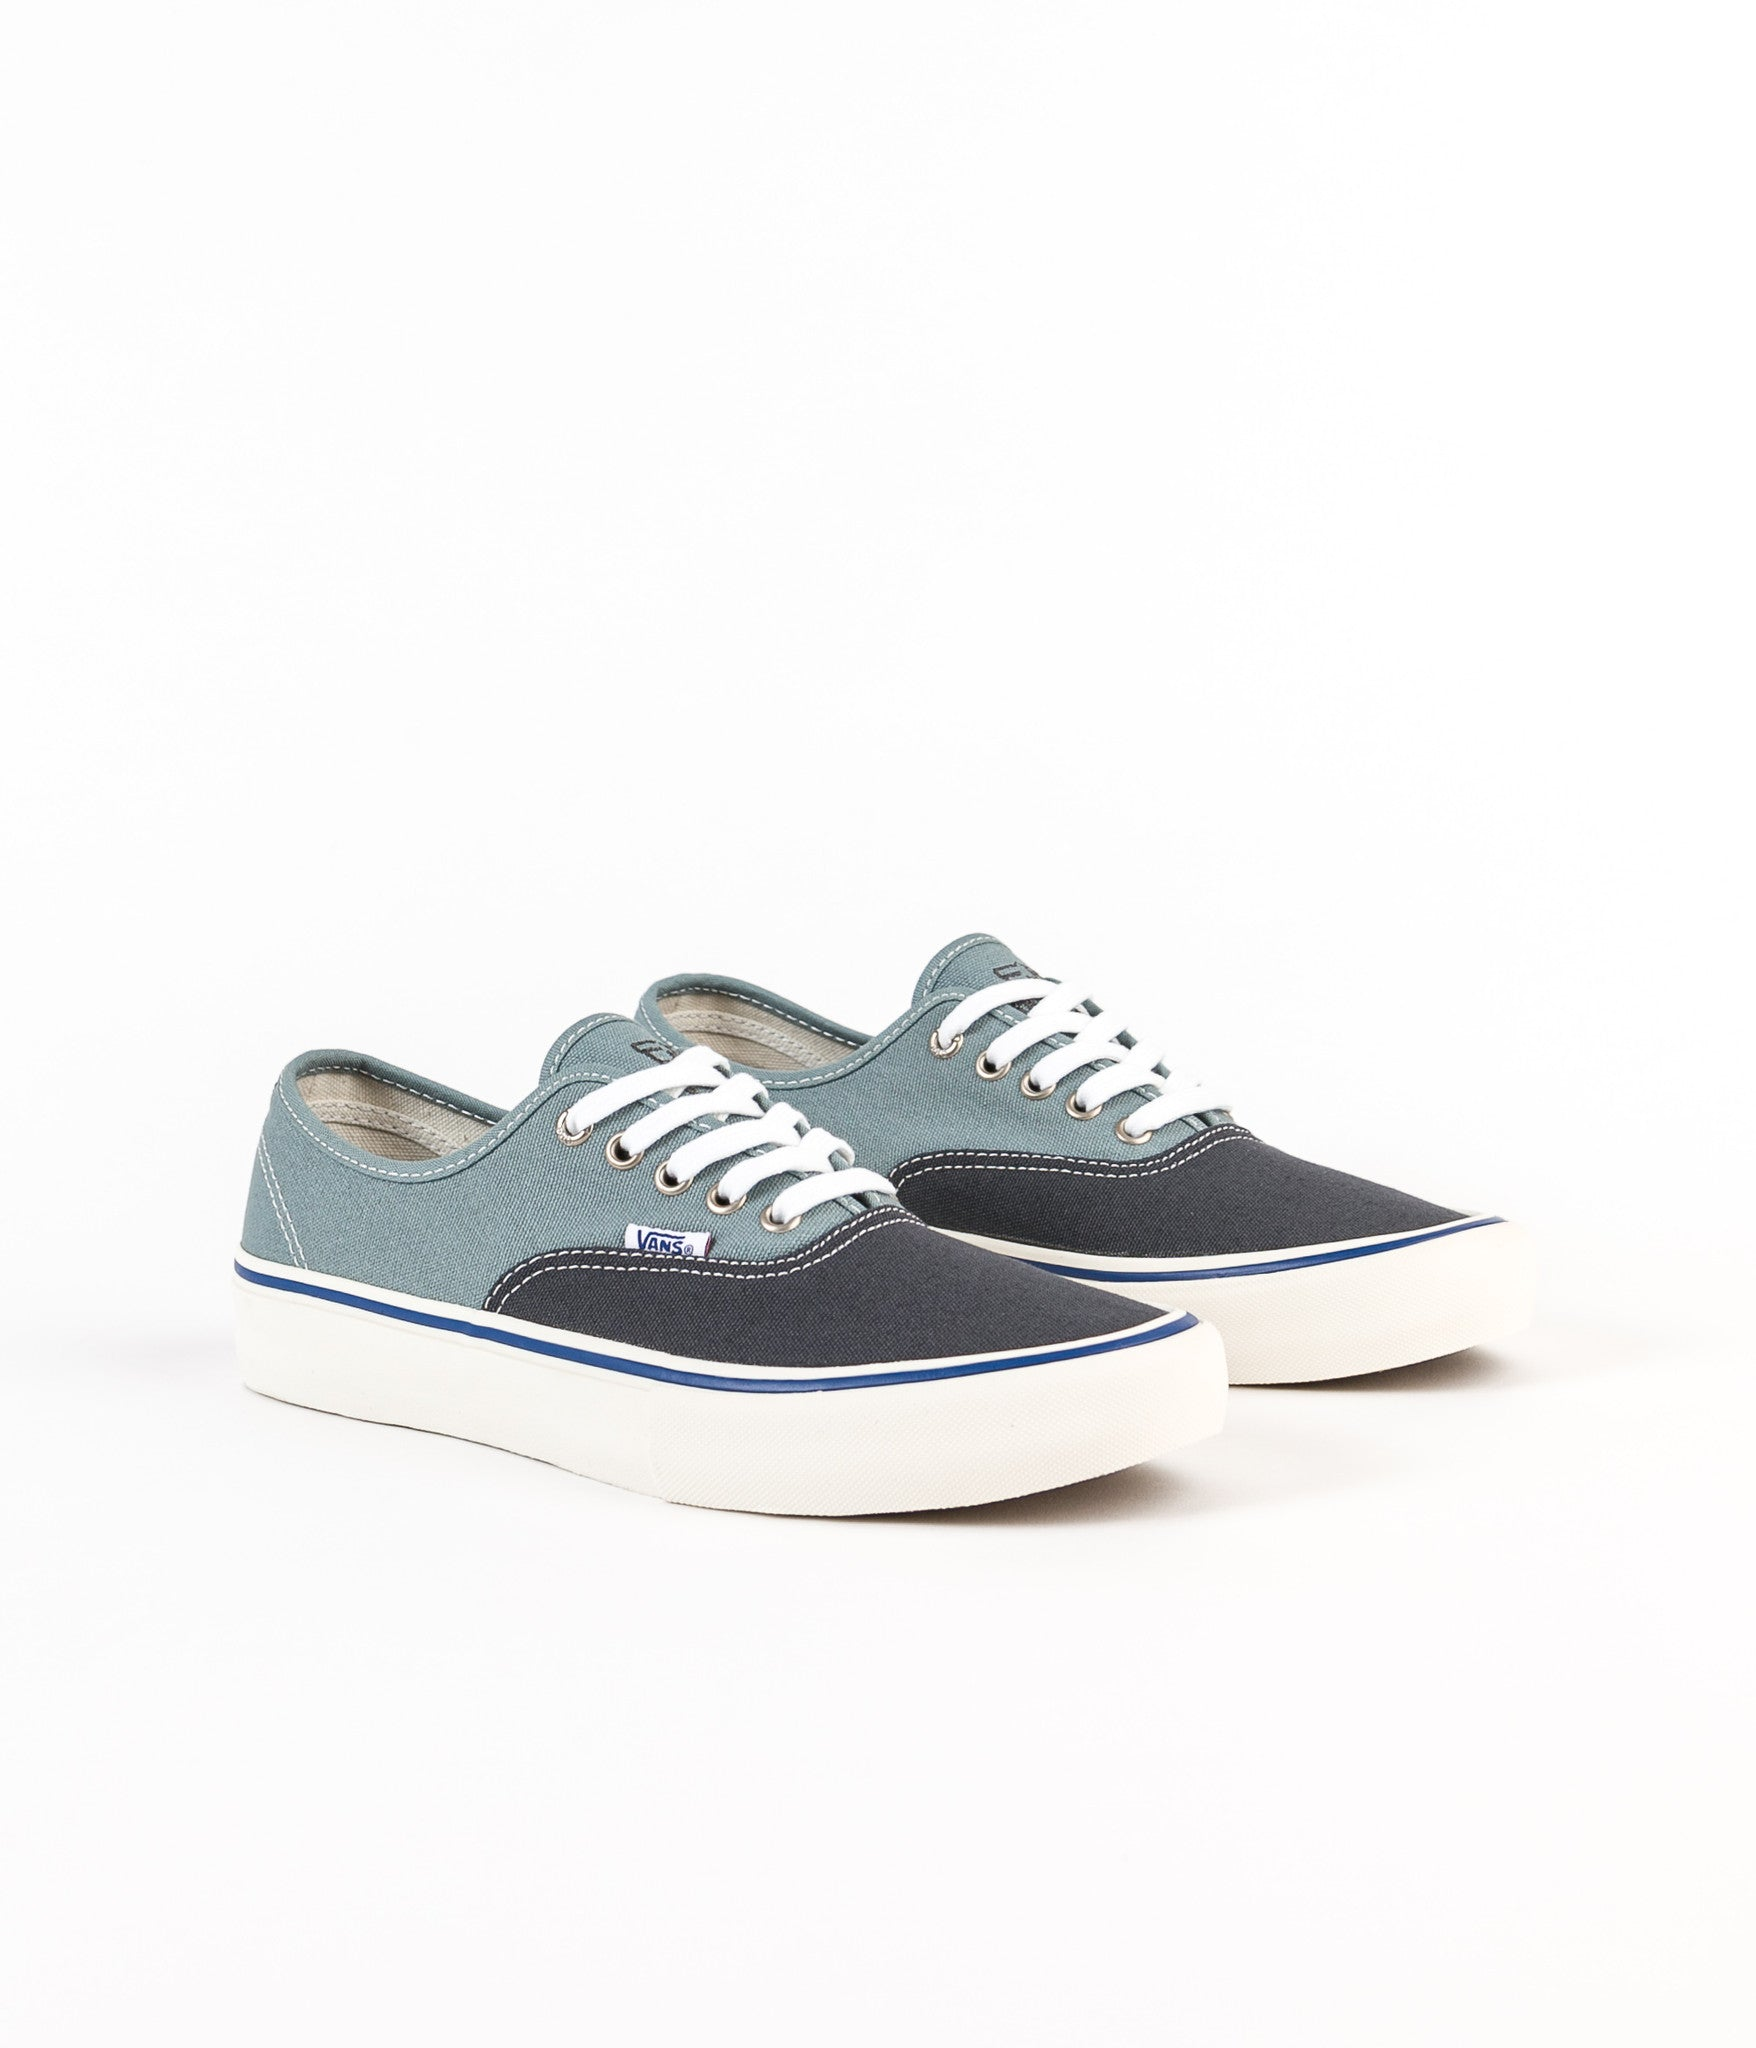 Vans Authentic Pro Elijah Berle Shoes - Navy